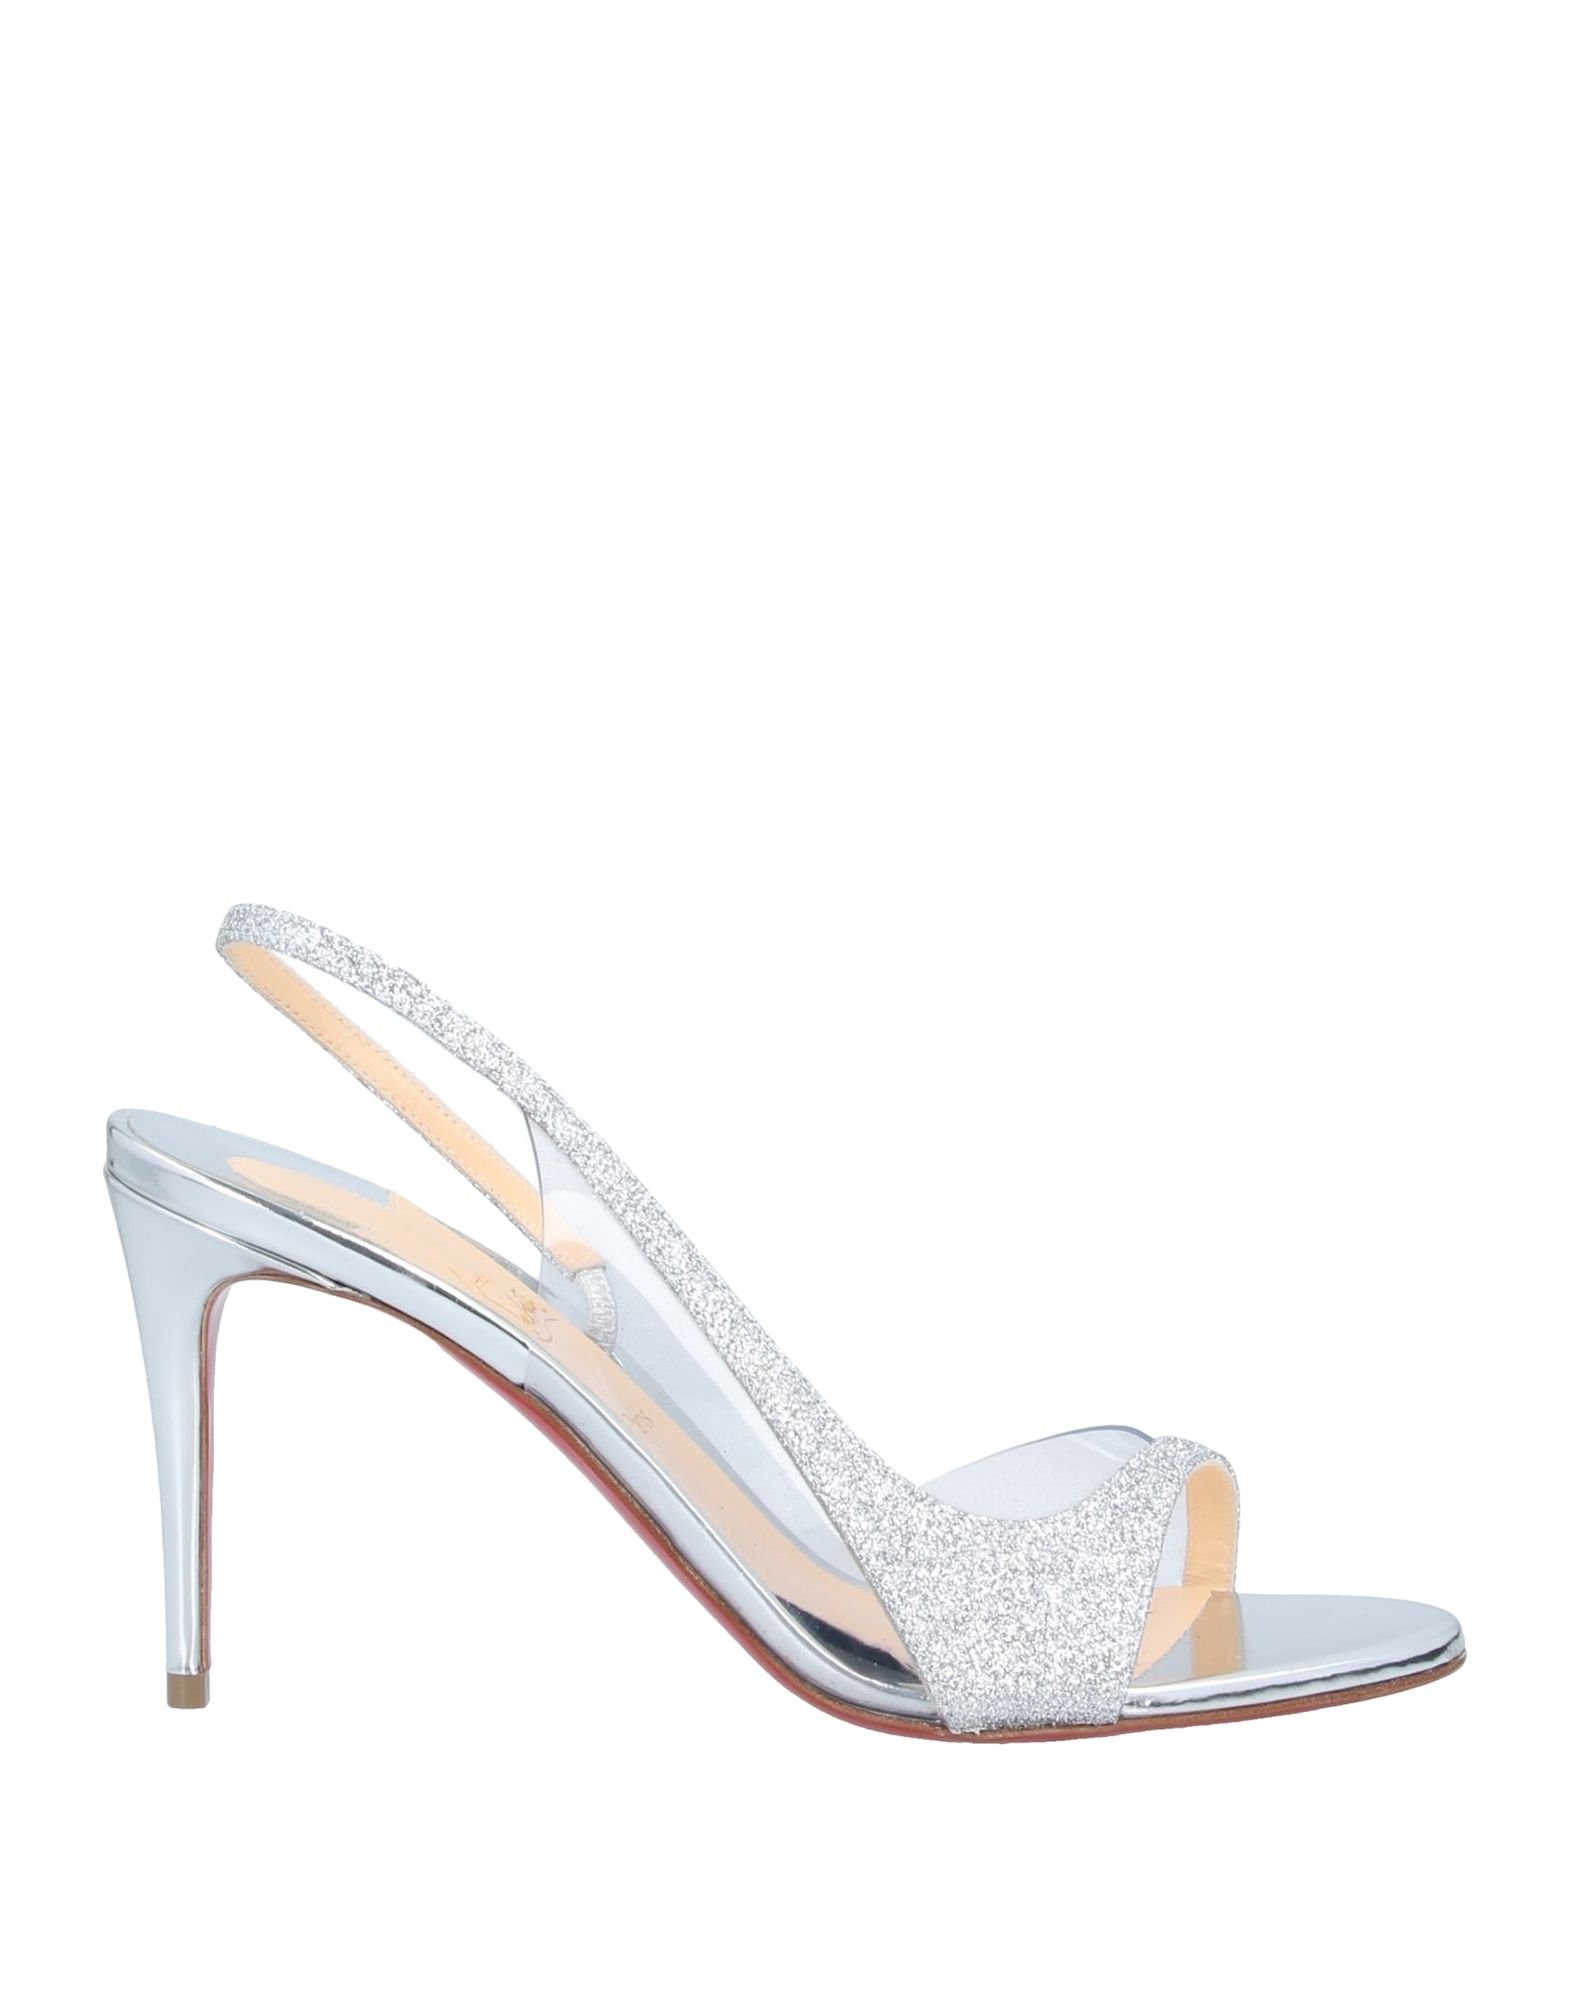 CHRISTIAN LOUBOUTIN Sandals. glitter, transparent effect, solid color, elasticized gores, round toeline, spike heel, covered heel, fully lined, leather sole, contains non-textile parts of animal origin, small sized. PVC - Polyvinyl chloride, Textile fibers